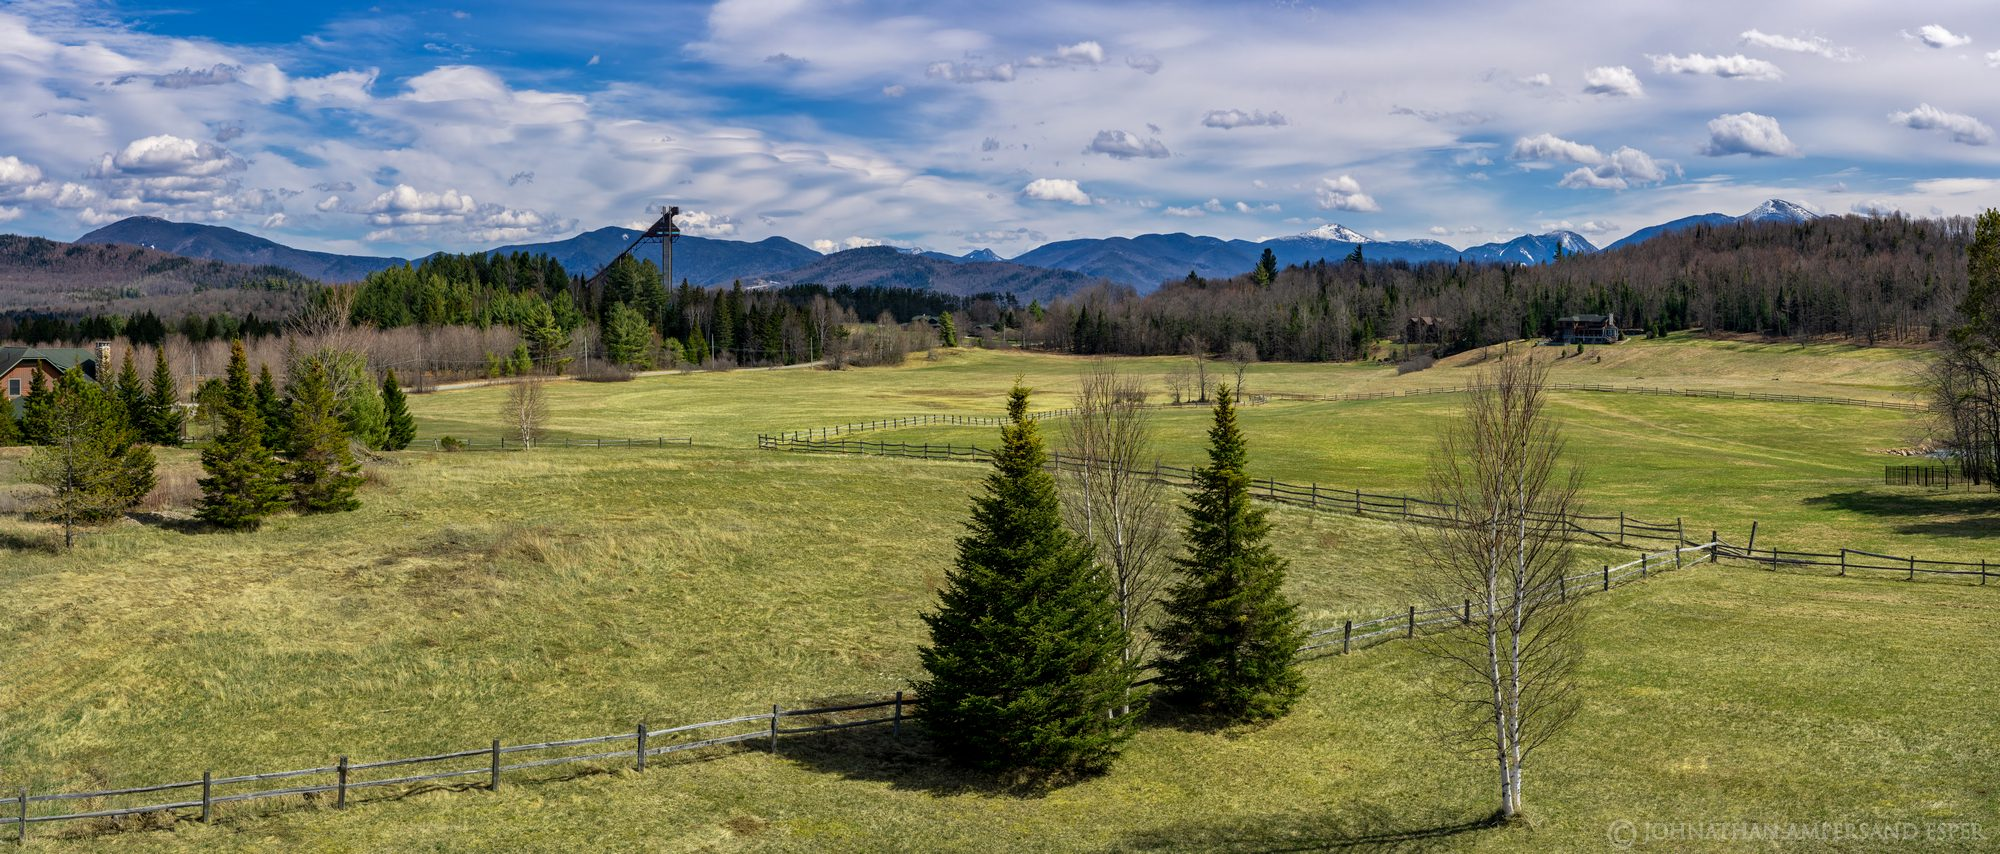 Dads house,Dad's house,fields,spring,2020,ski jumps,homes,Lake Placid,village,idyllic view,home view,sunny,Bear Cub Rd, photo